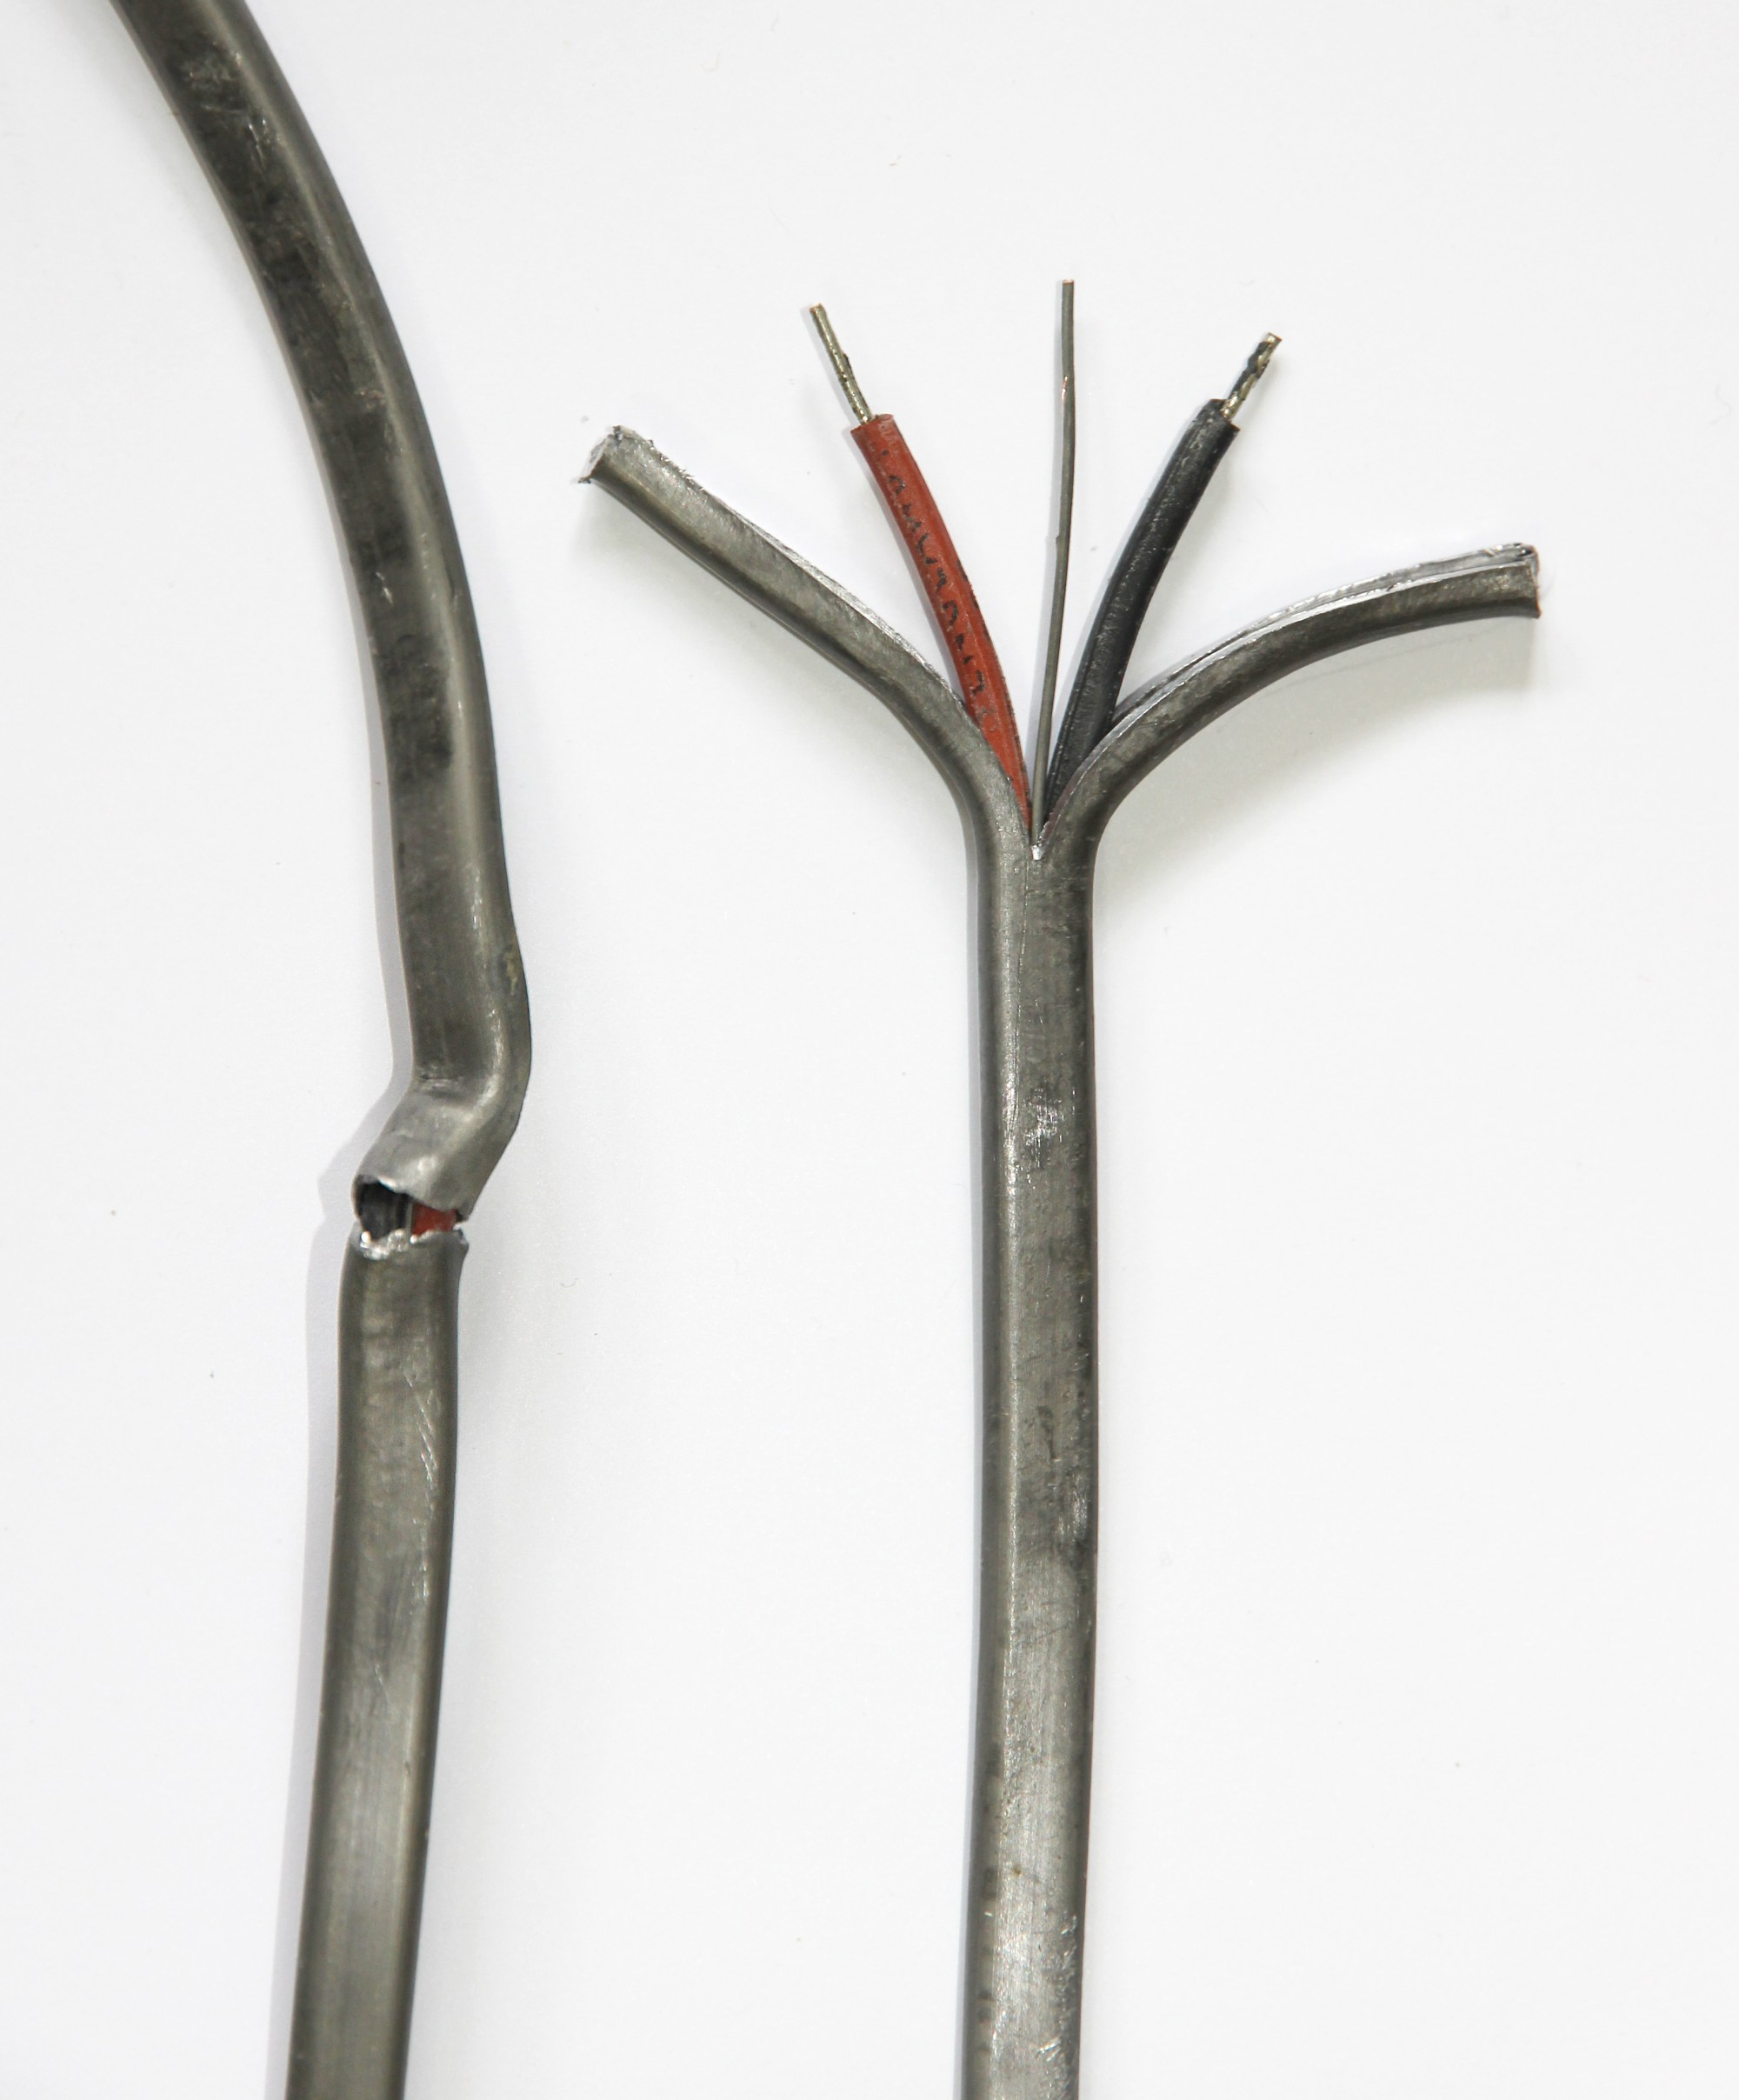 hight resolution of file lead cased electrical wire from a circa 1912 house on southern old wiring red black